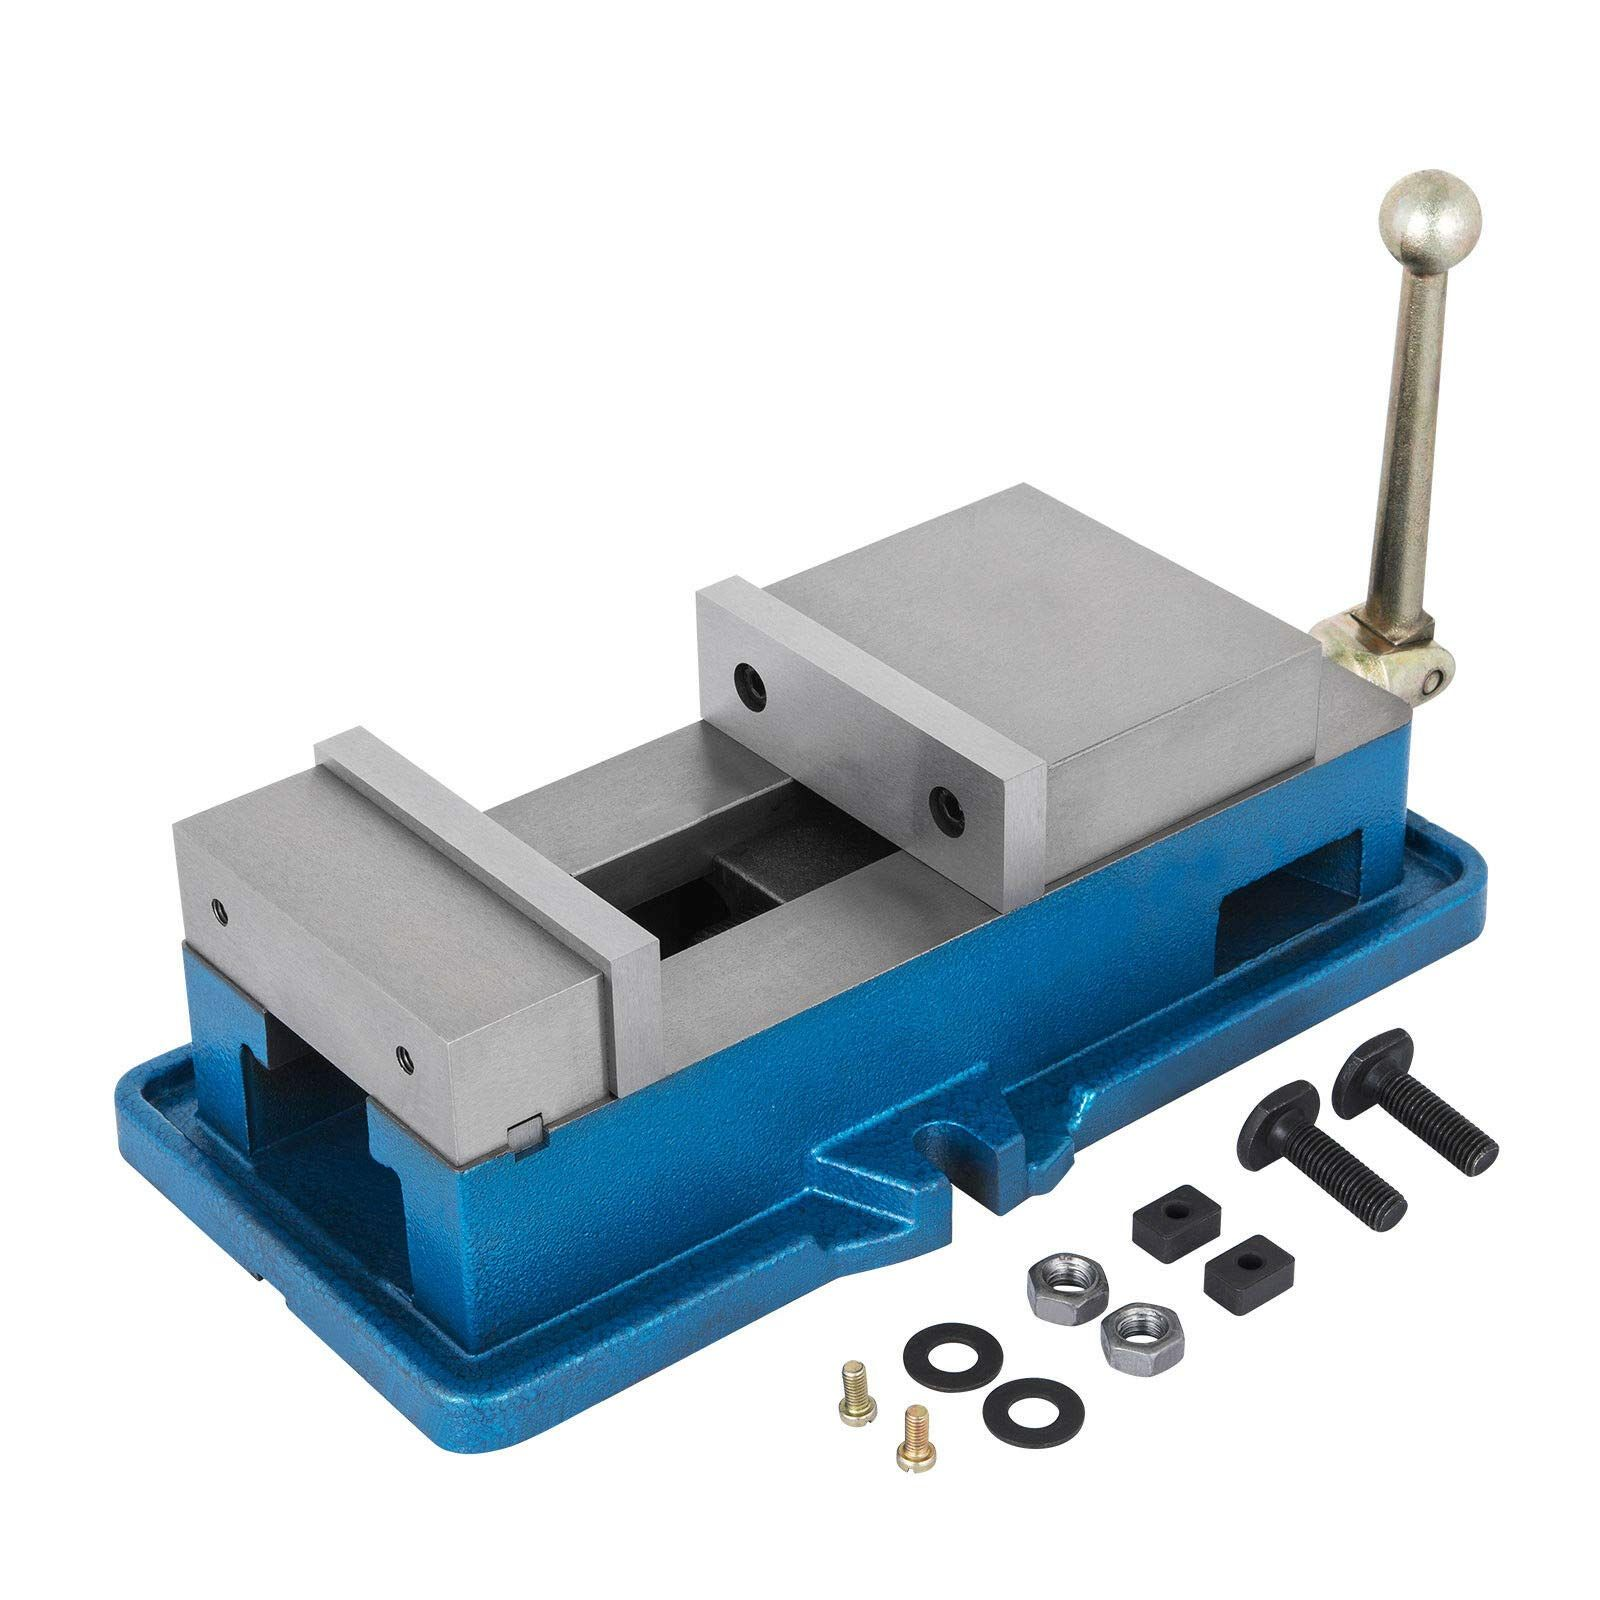 Happybuy 4 Inch Accu Lock Down Vise Precision Milling Vise 4 Inch Jaw Width Drill Press Vise Milling Drilling Mac In 2020 Drilling Machine Drill Press Vise Bench Clamp